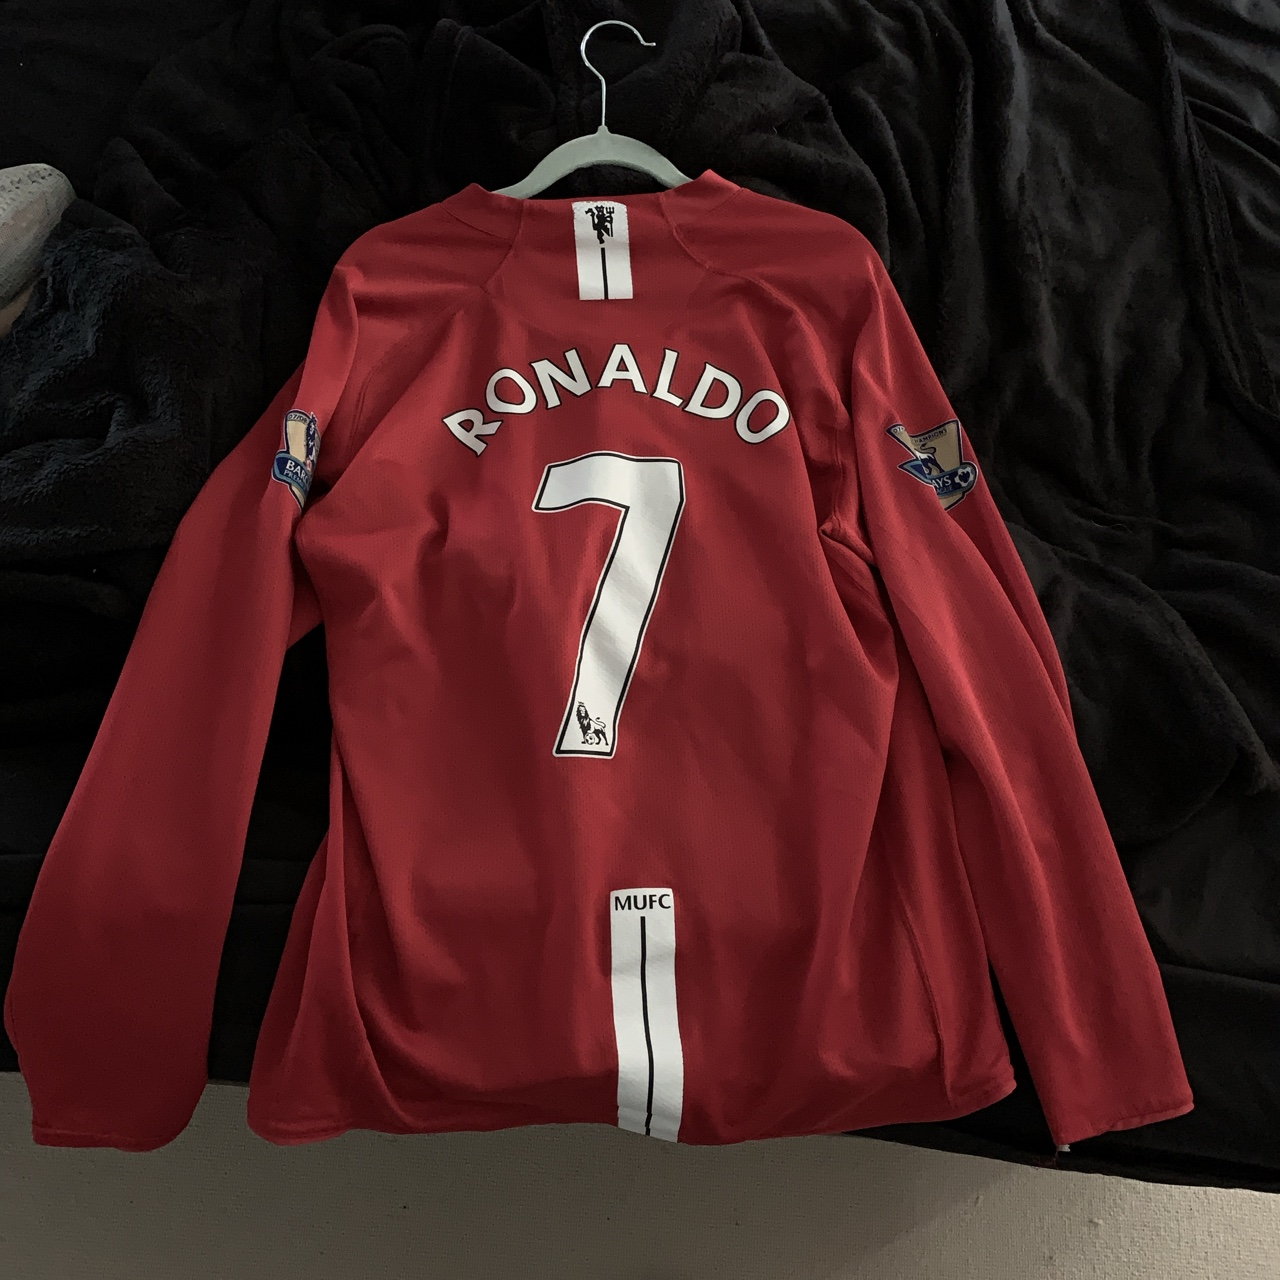 best sneakers 5e3c0 b7332 Manchester United Jersey 07/08 Ronaldo 7, bought... - Depop